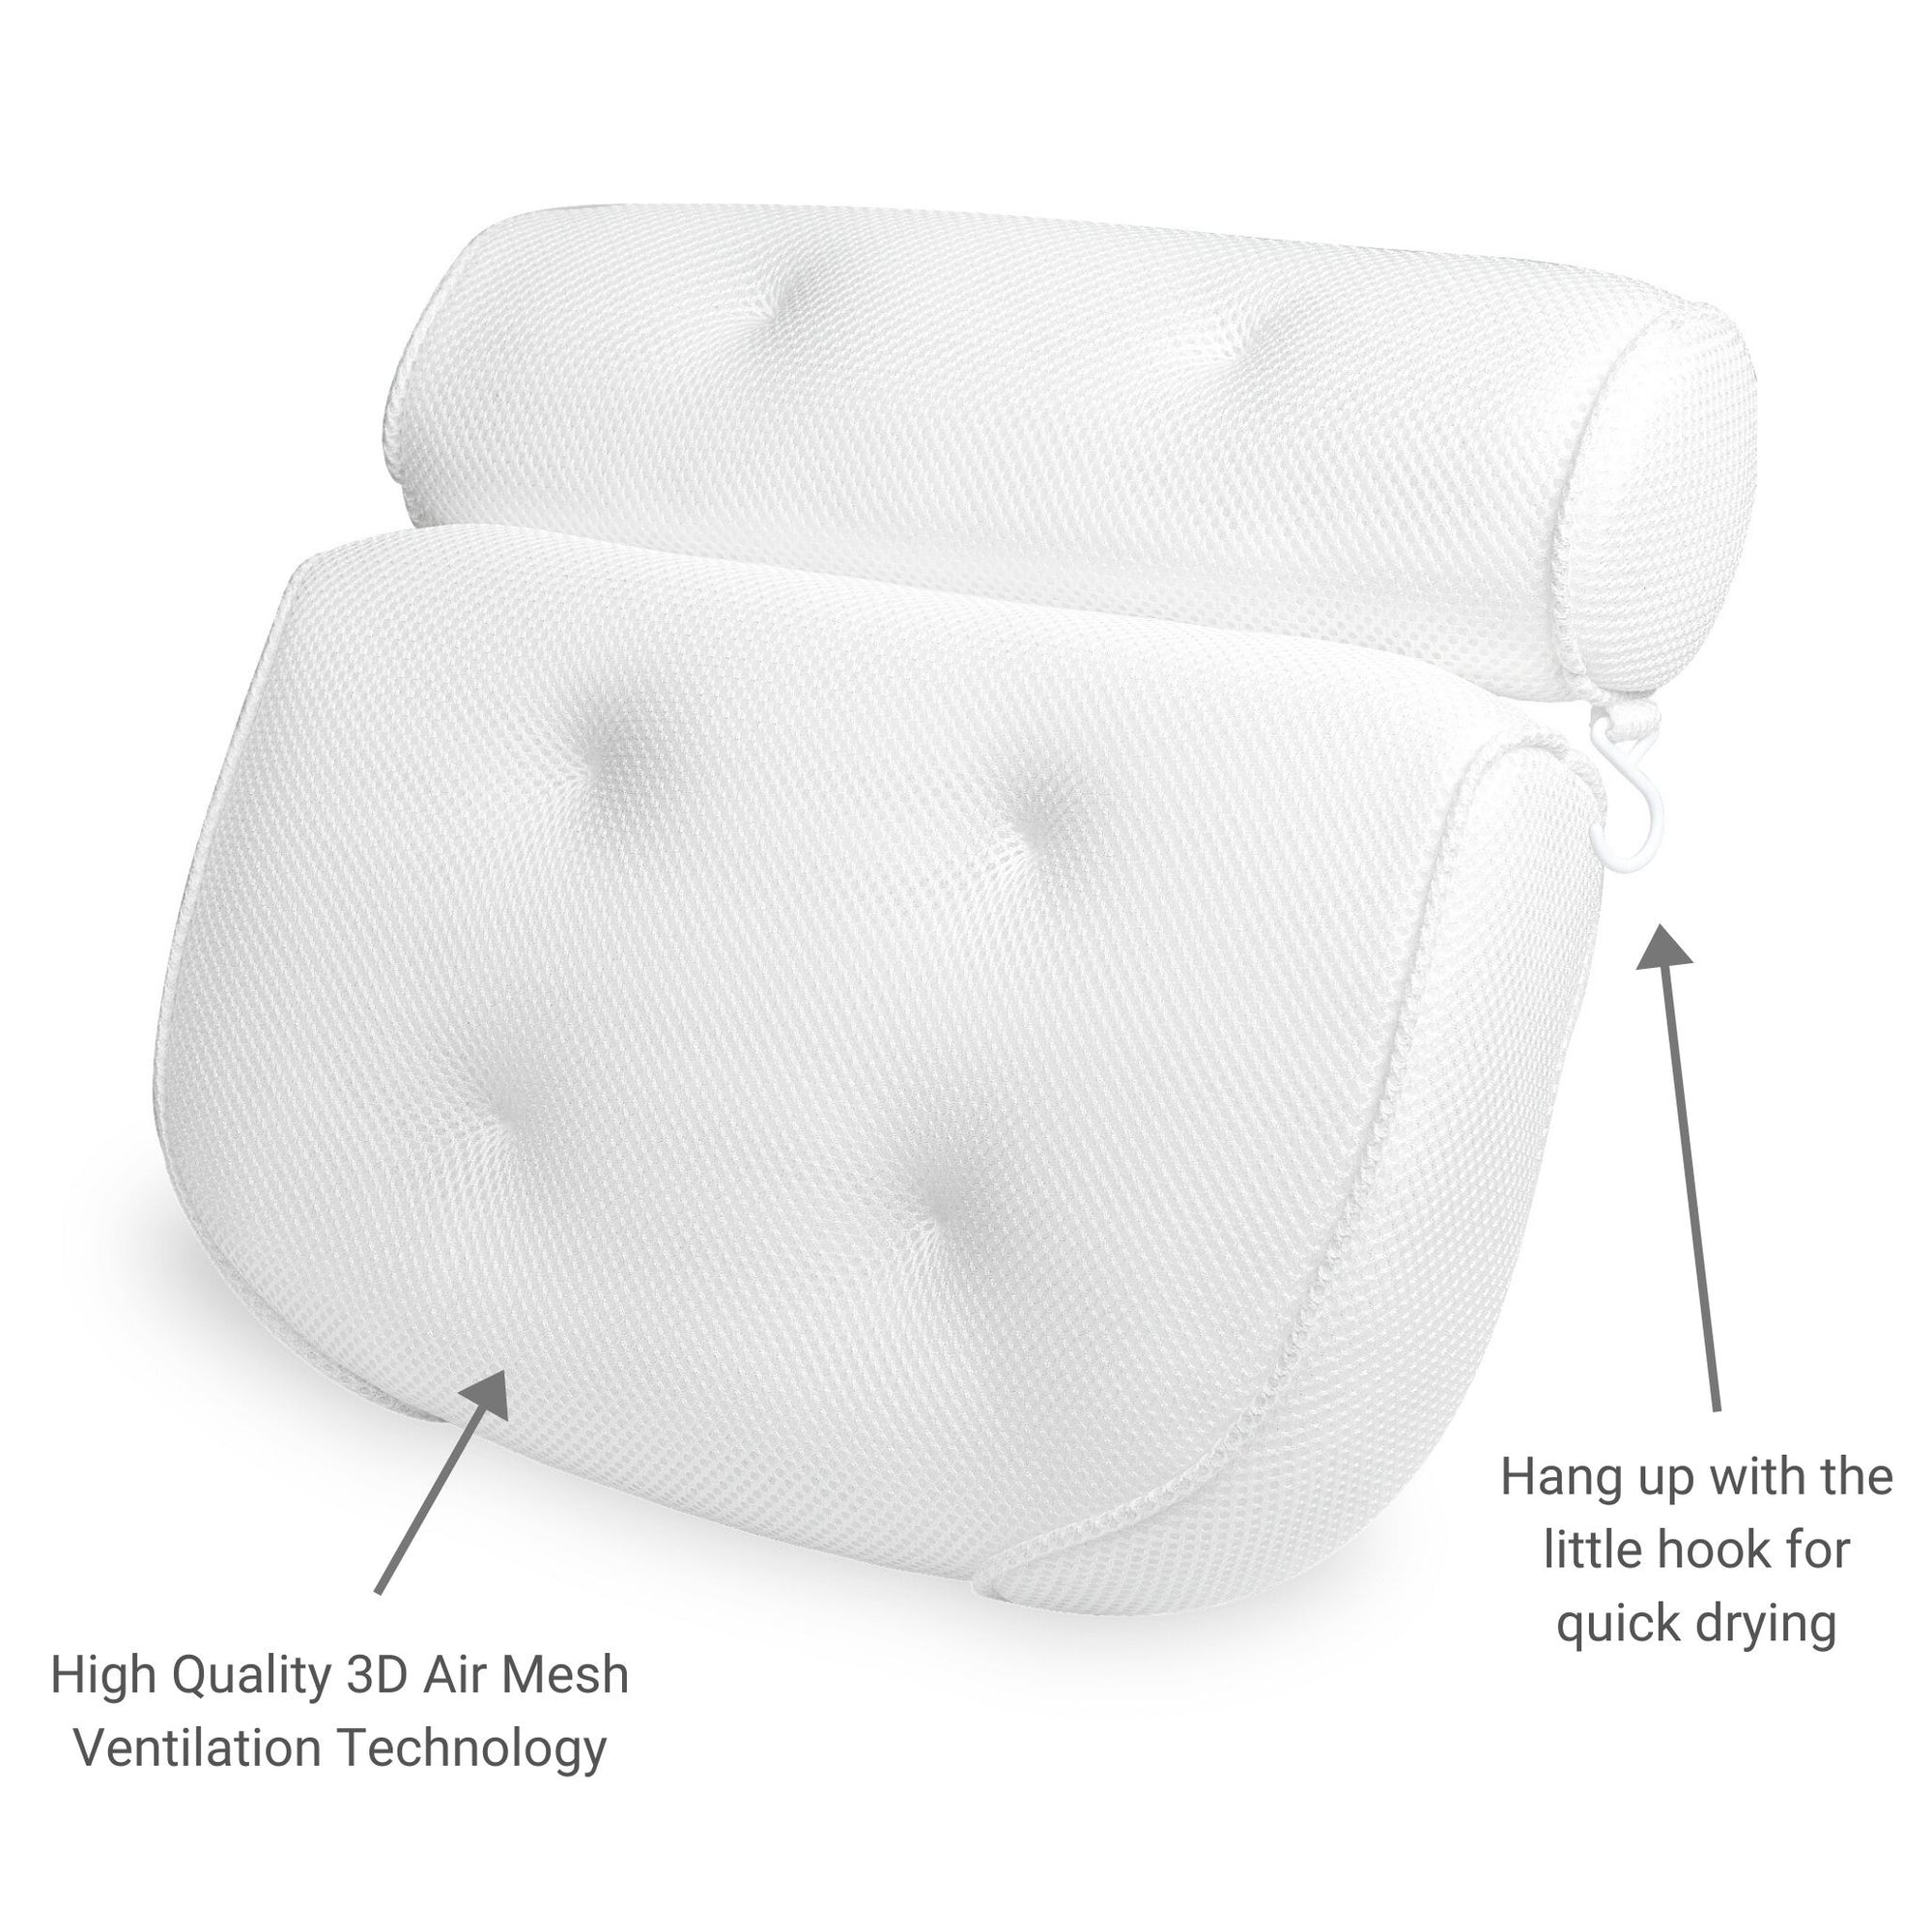 High Quality bath pillow for tub features and benefits.